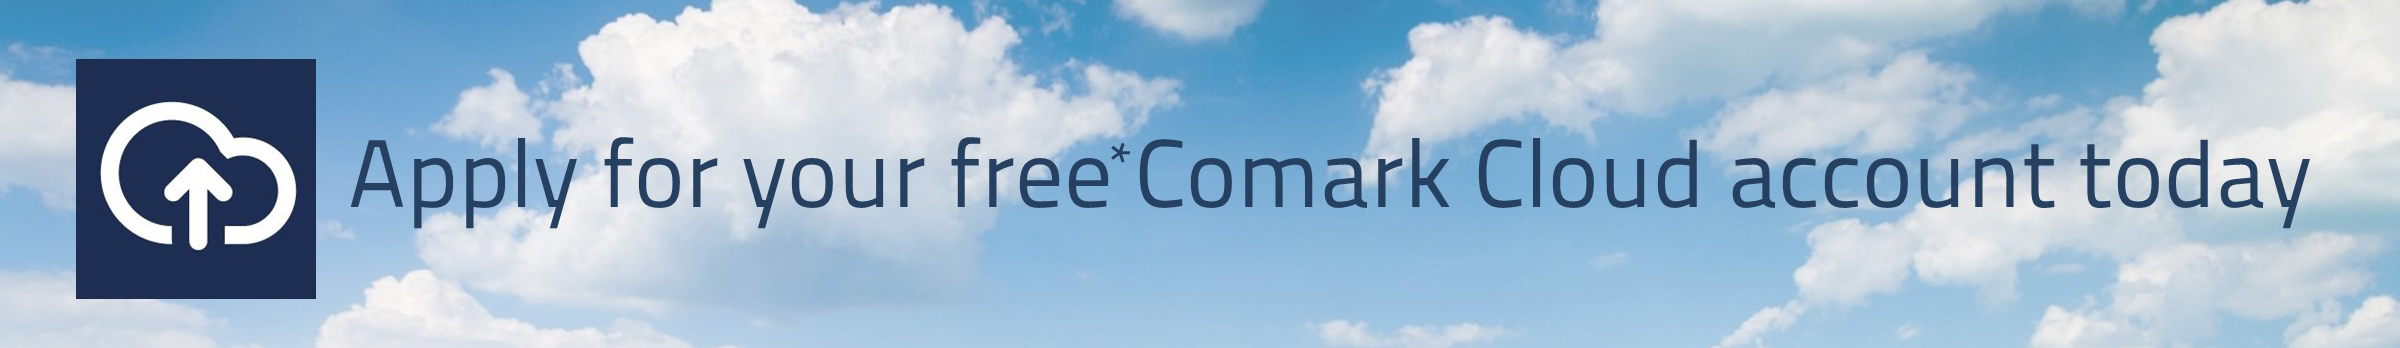 Comark Cloud